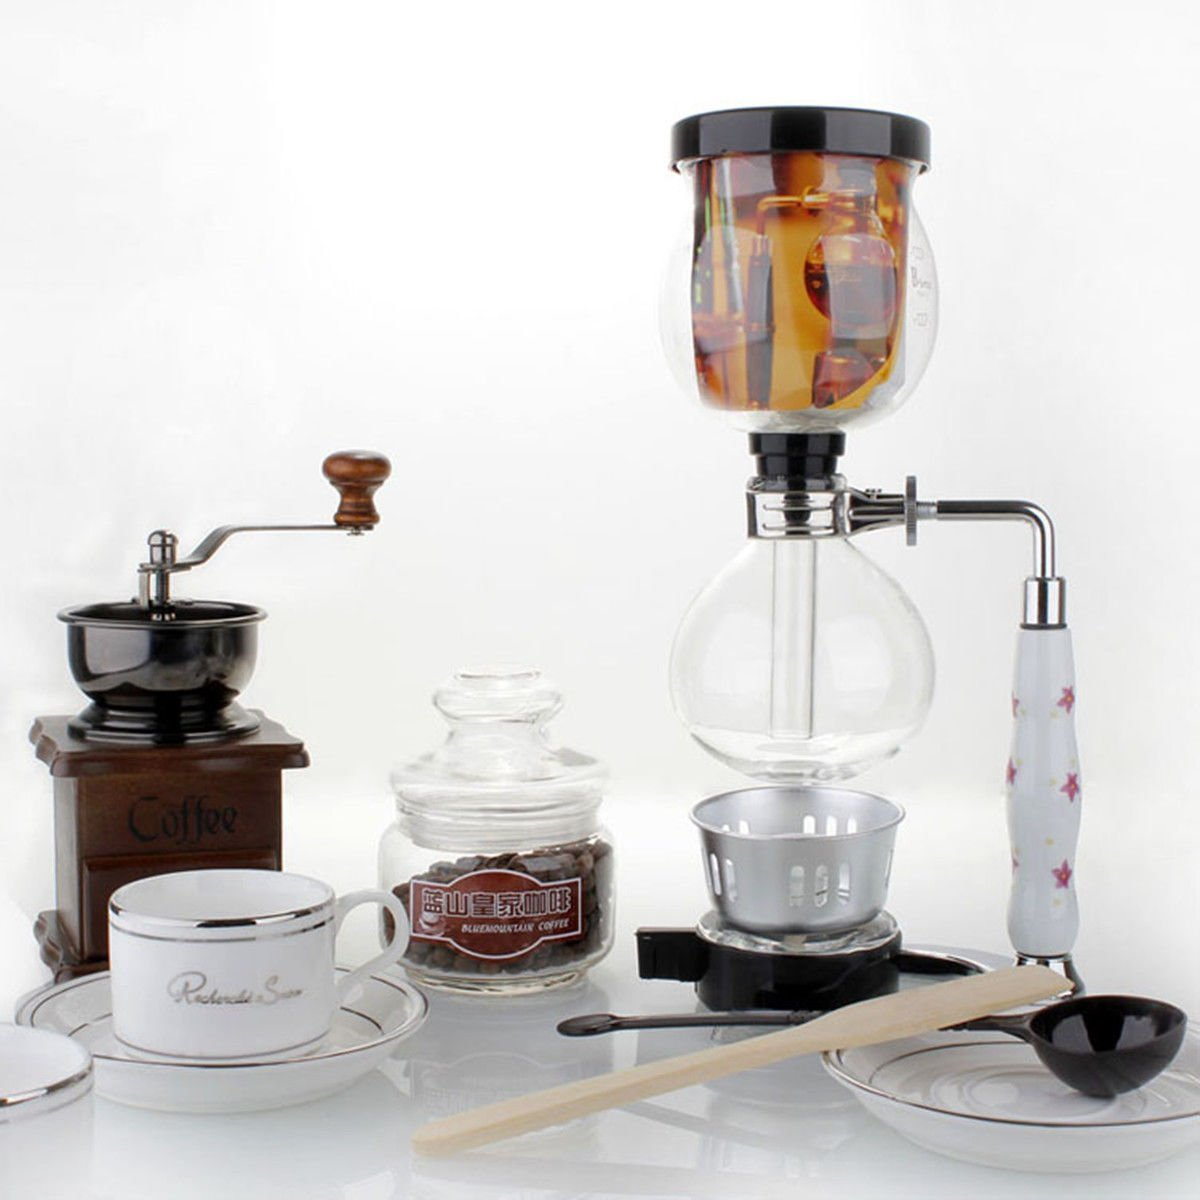 AUKO Manual Coffee Grinder and Maker Set, Artisanal Hand Crank Coffee Mill Glass with Spoon, Burner, Wood Stirrer, Filter and 2 Cups